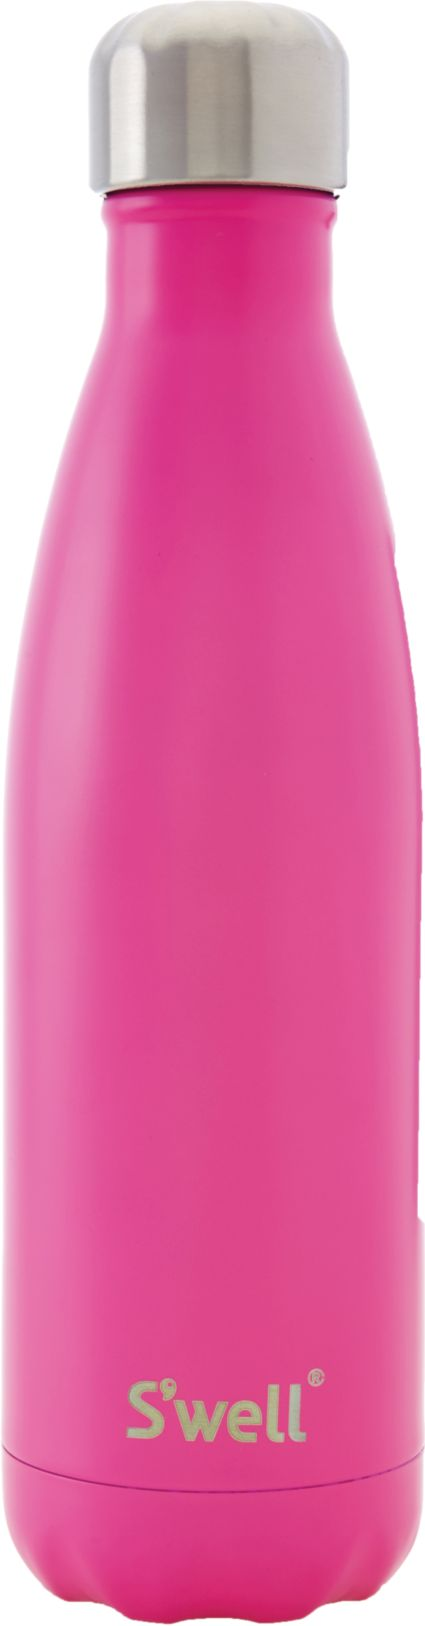 S'well Standard Mouth 17 oz Water Bottle